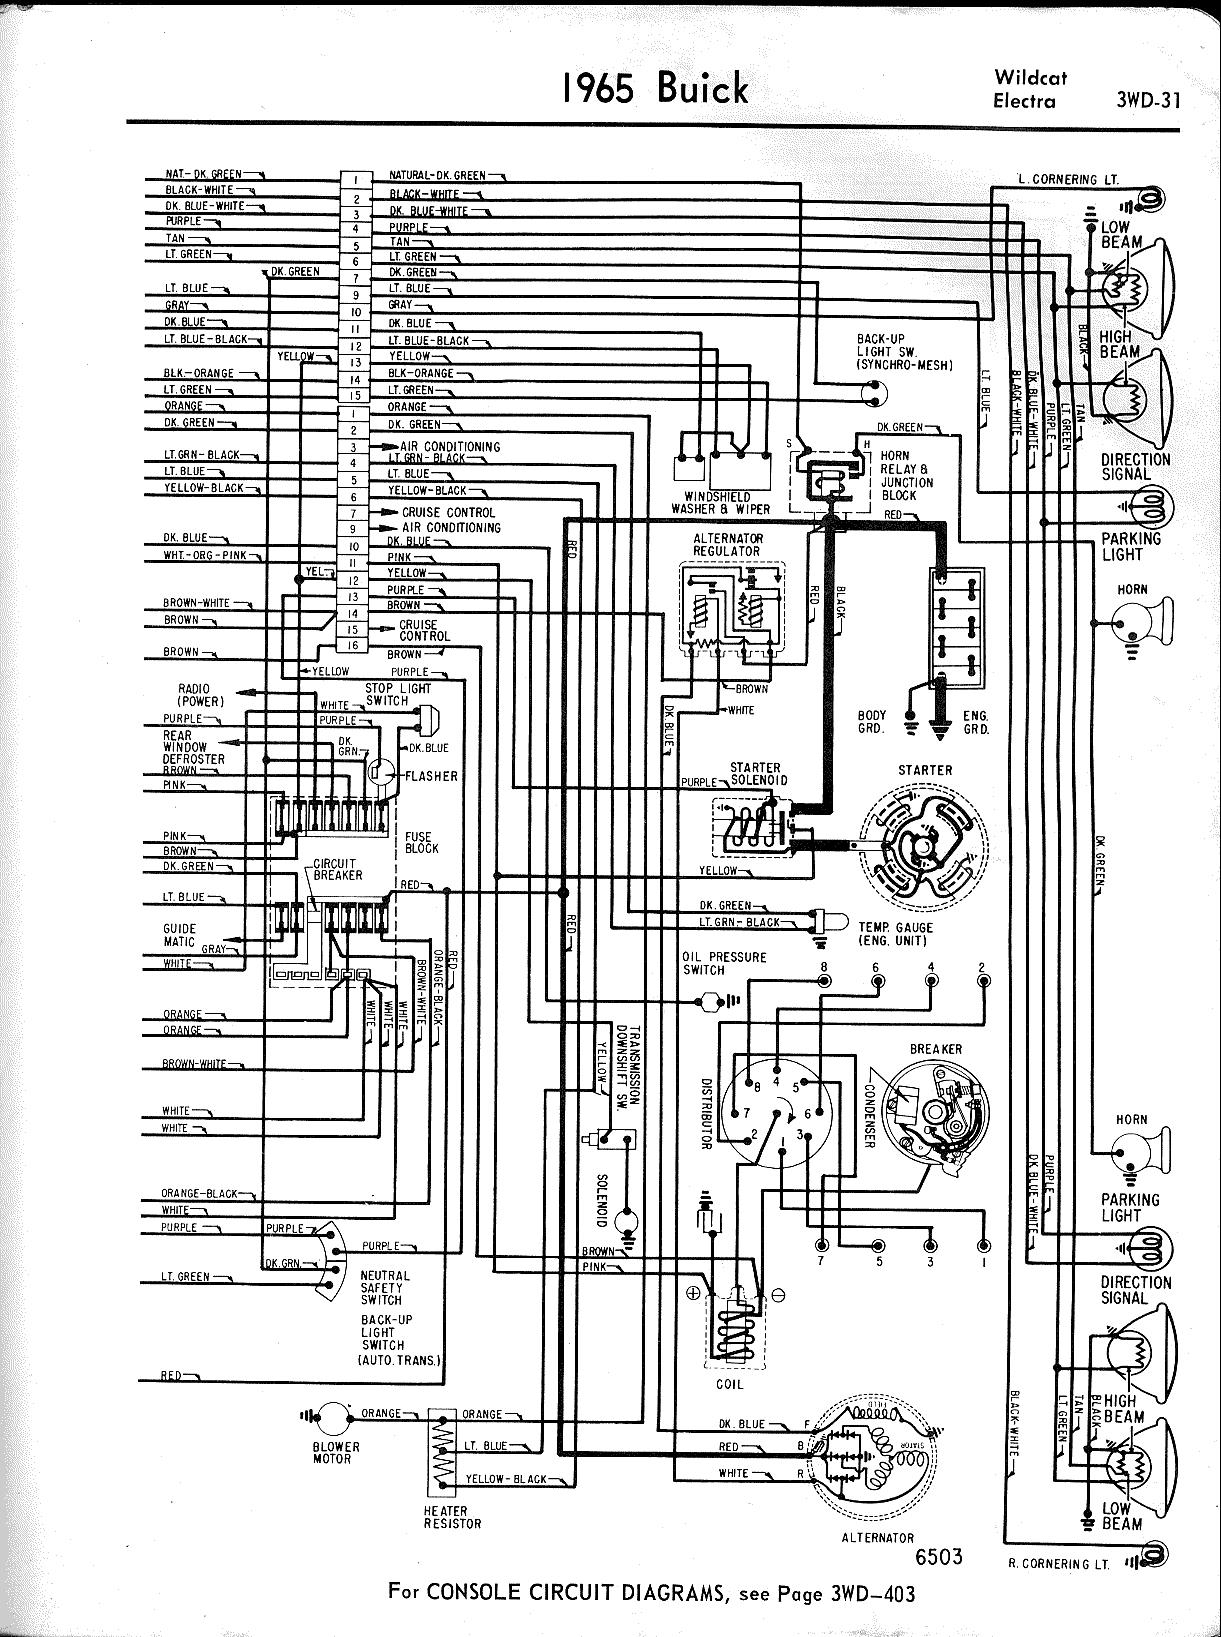 hight resolution of buick wiring diagrams 1957 1965 1965 wildcat electra left half